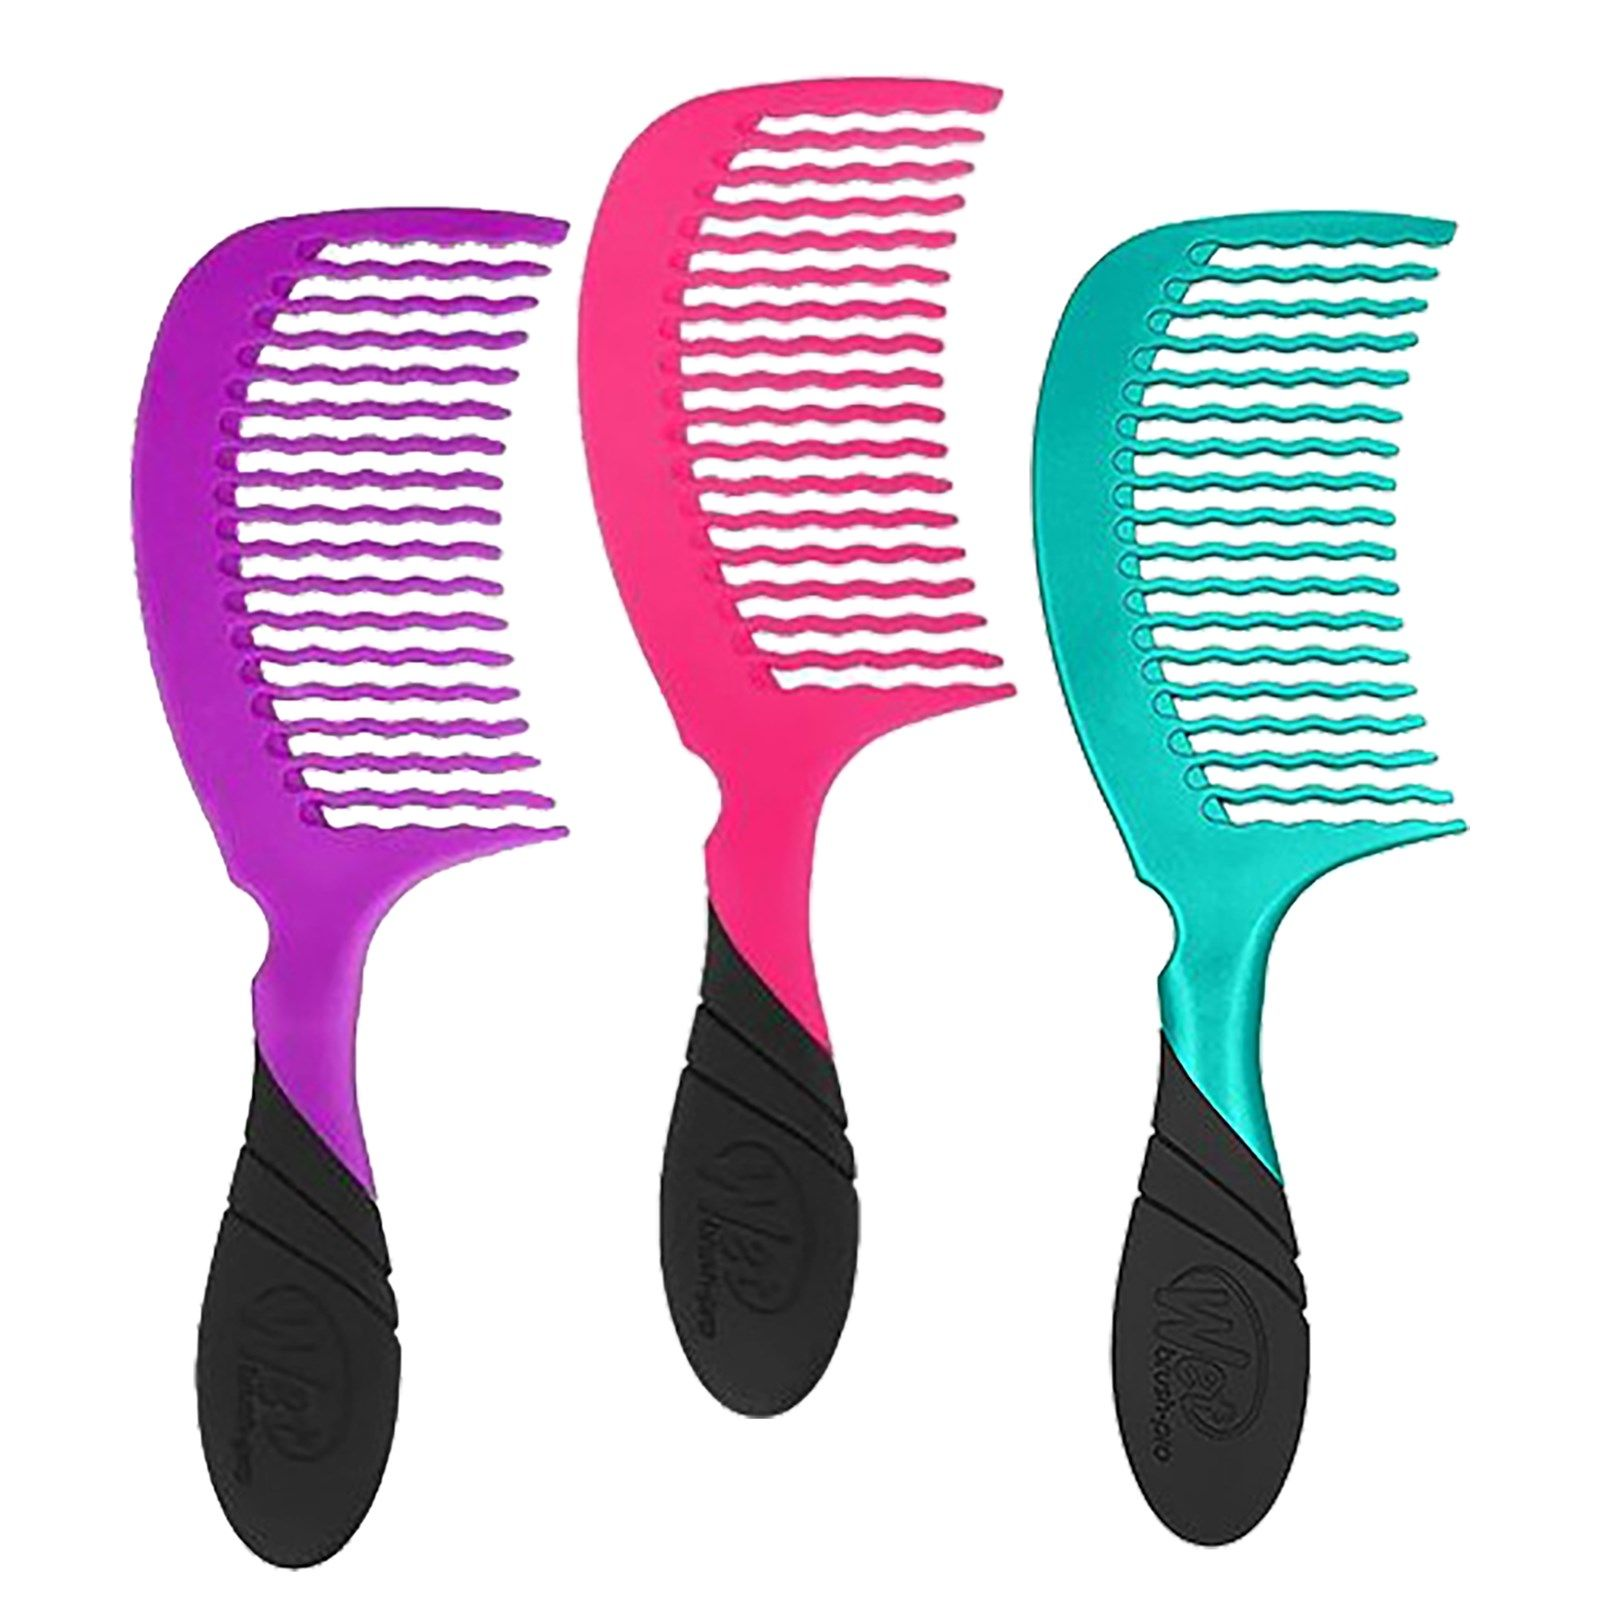 The Wet Brush Pro Comb 2.0